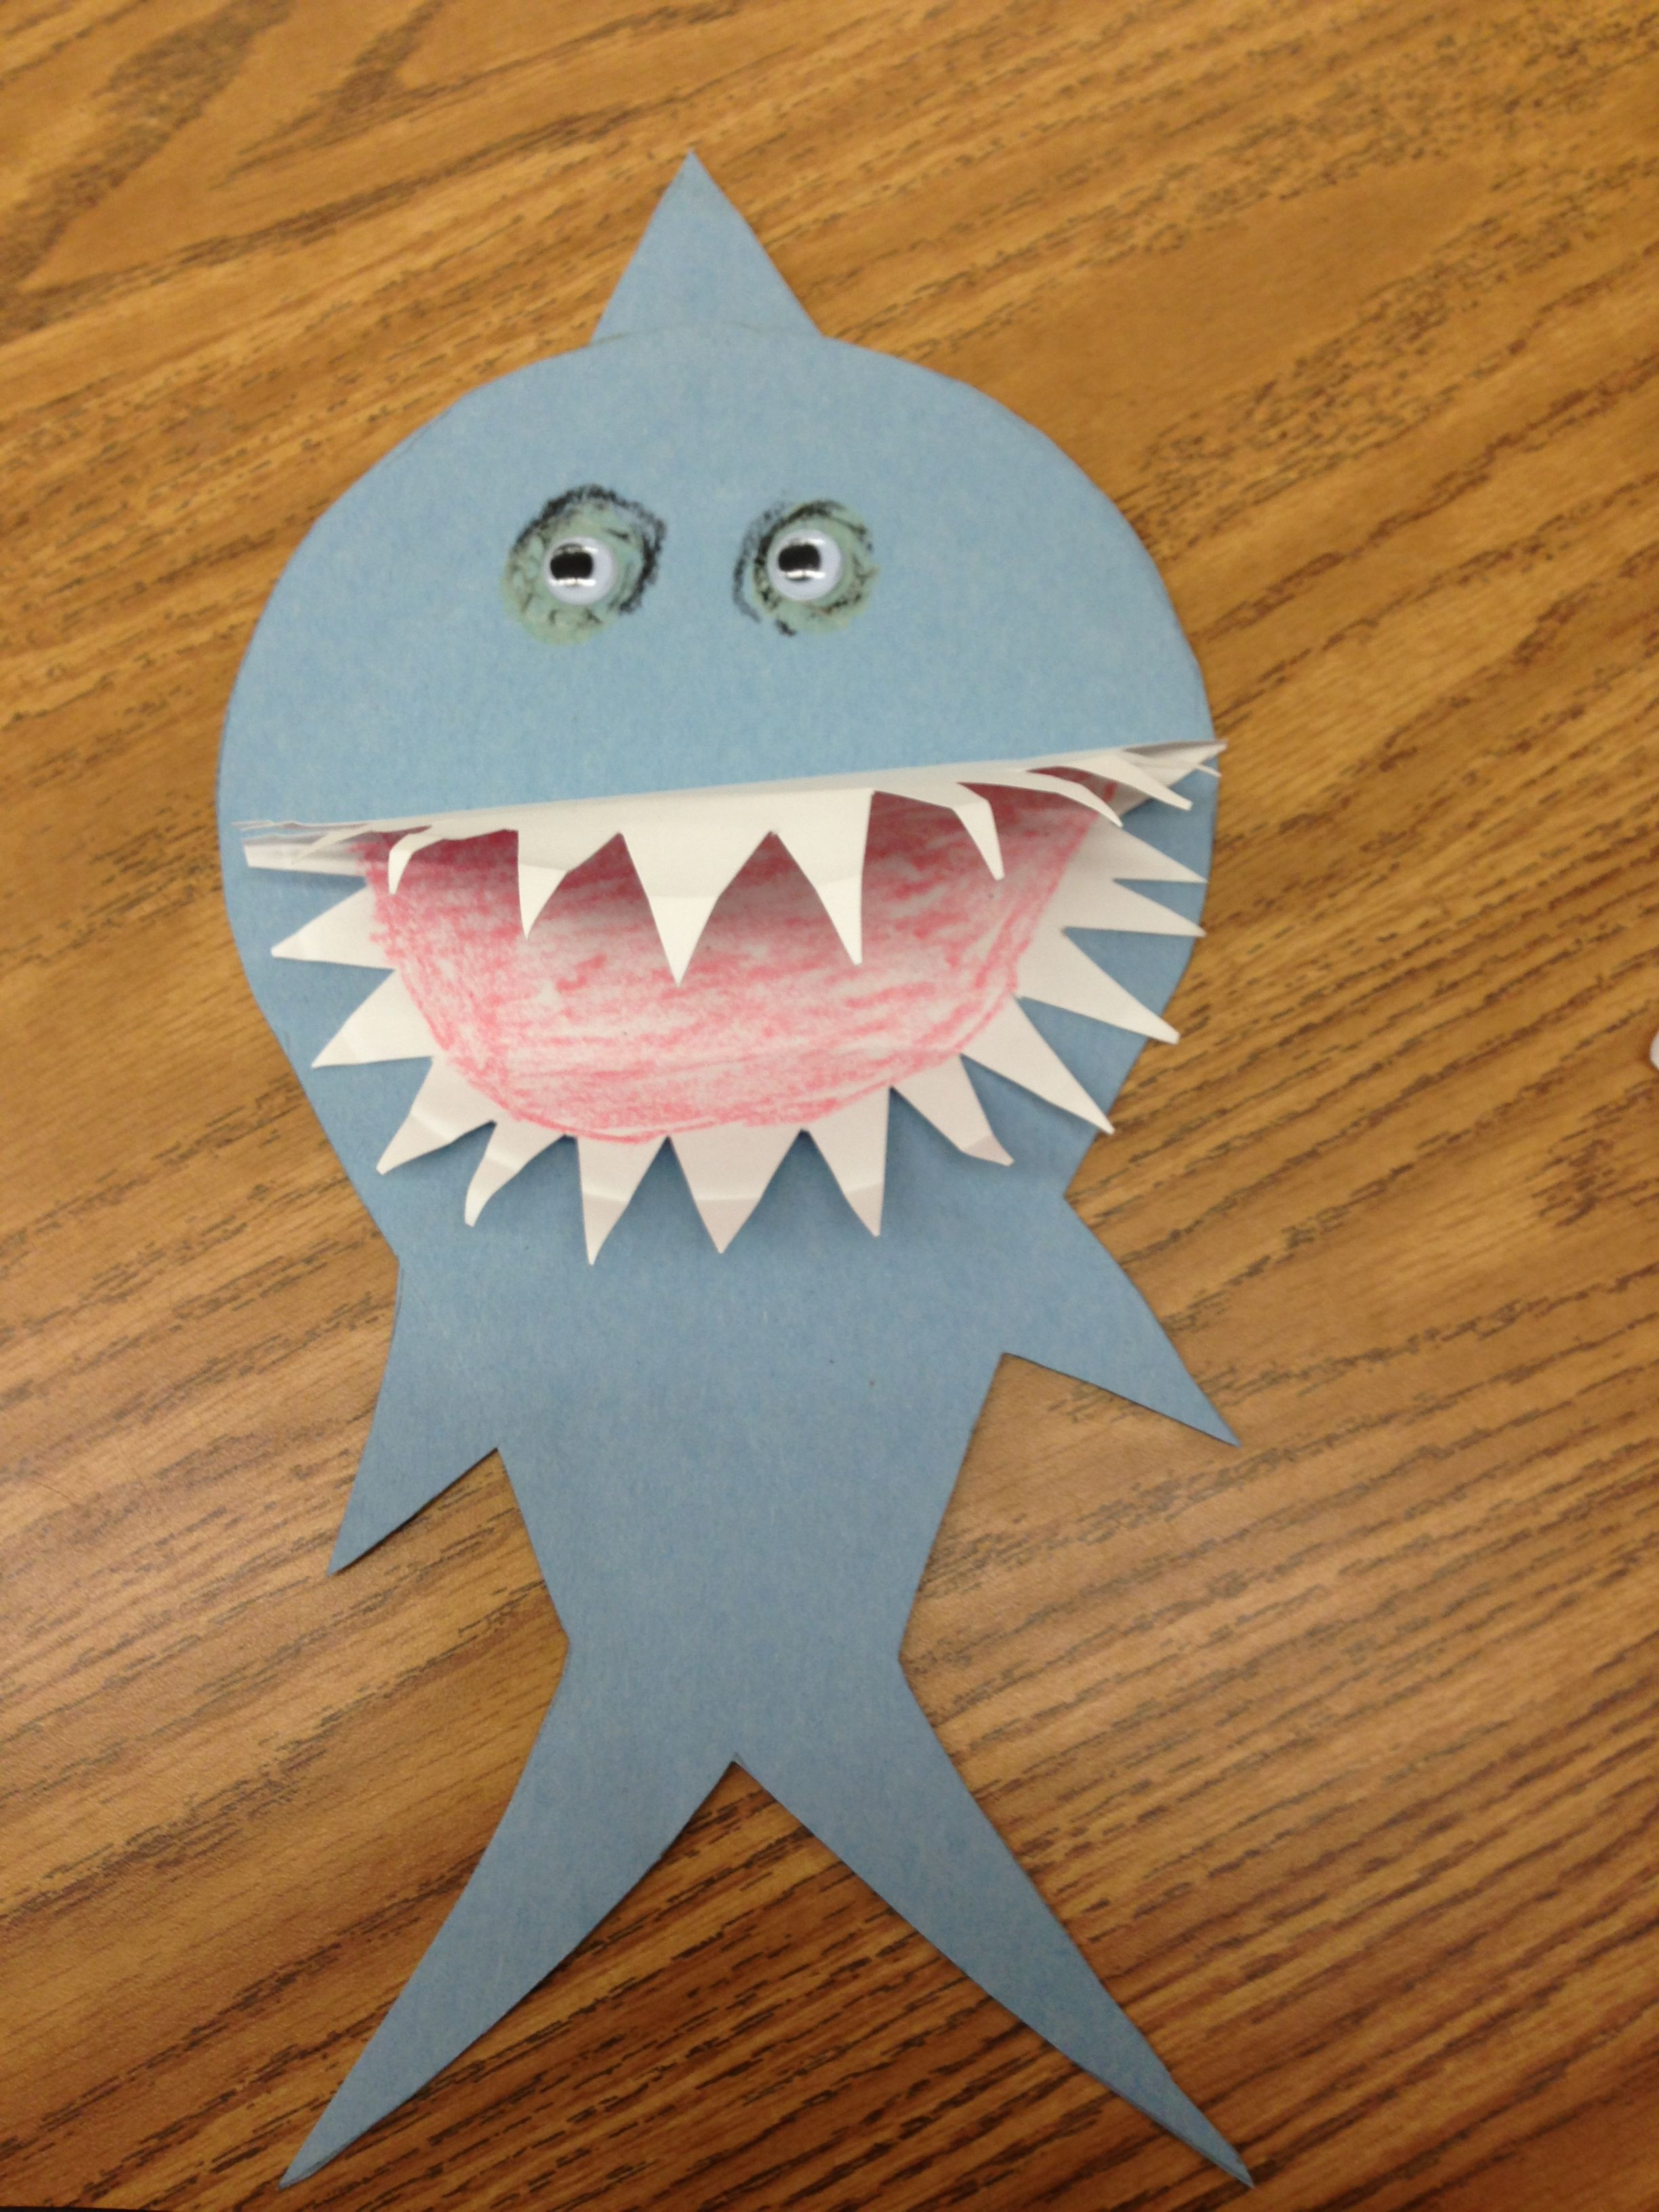 Shark paper plate project : paper plate projects - pezcame.com